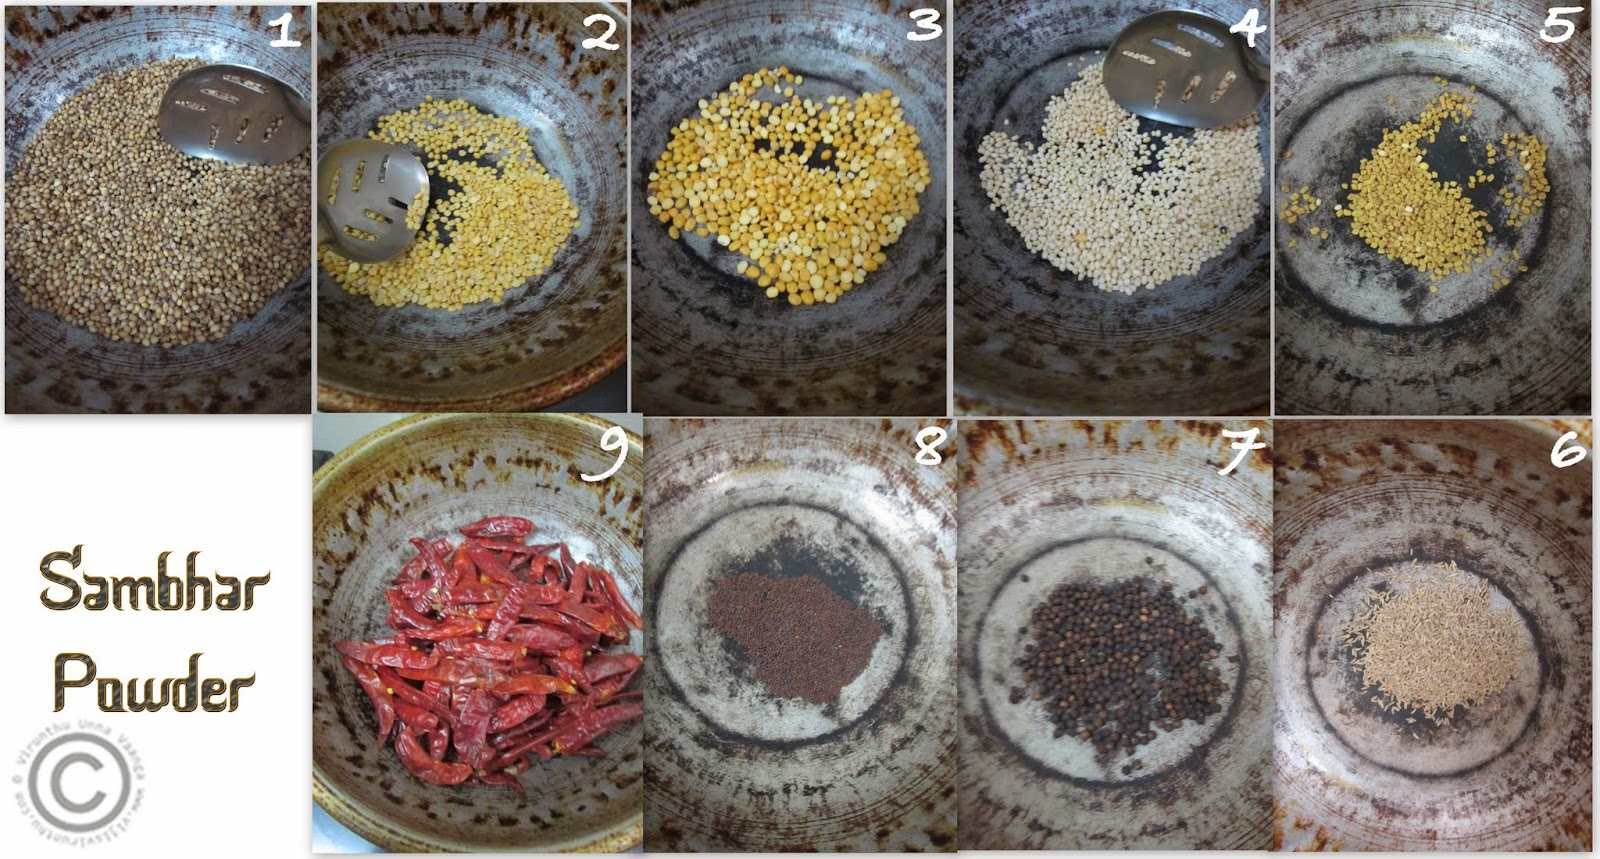 ingredients-to-make-sambhar-powder